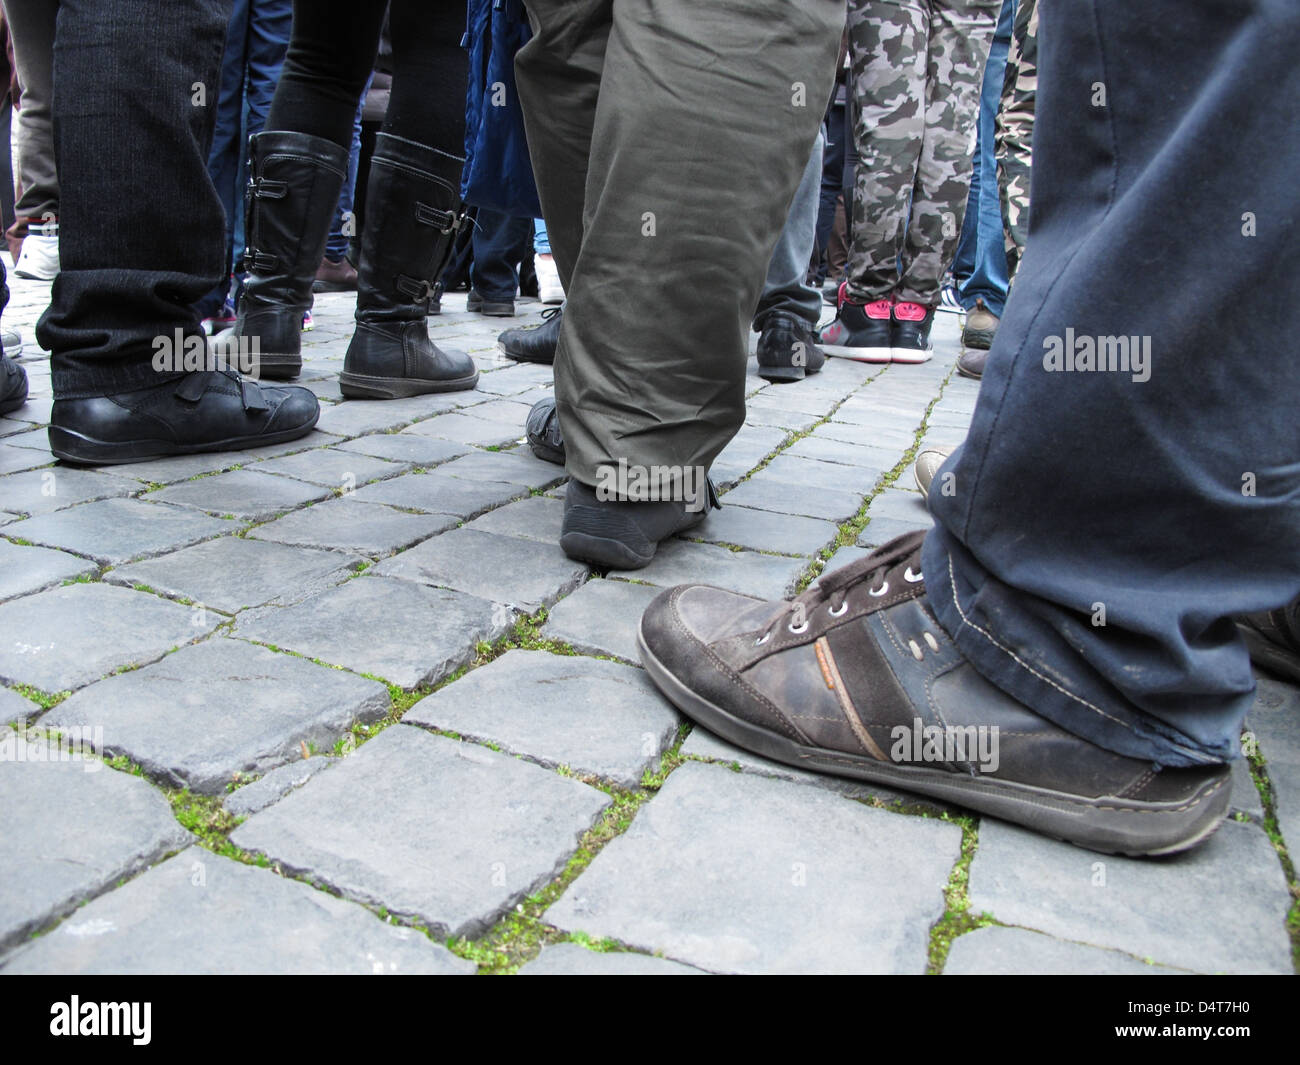 feet of people waiting the Pope in acrowdy saint peter square - Stock Image